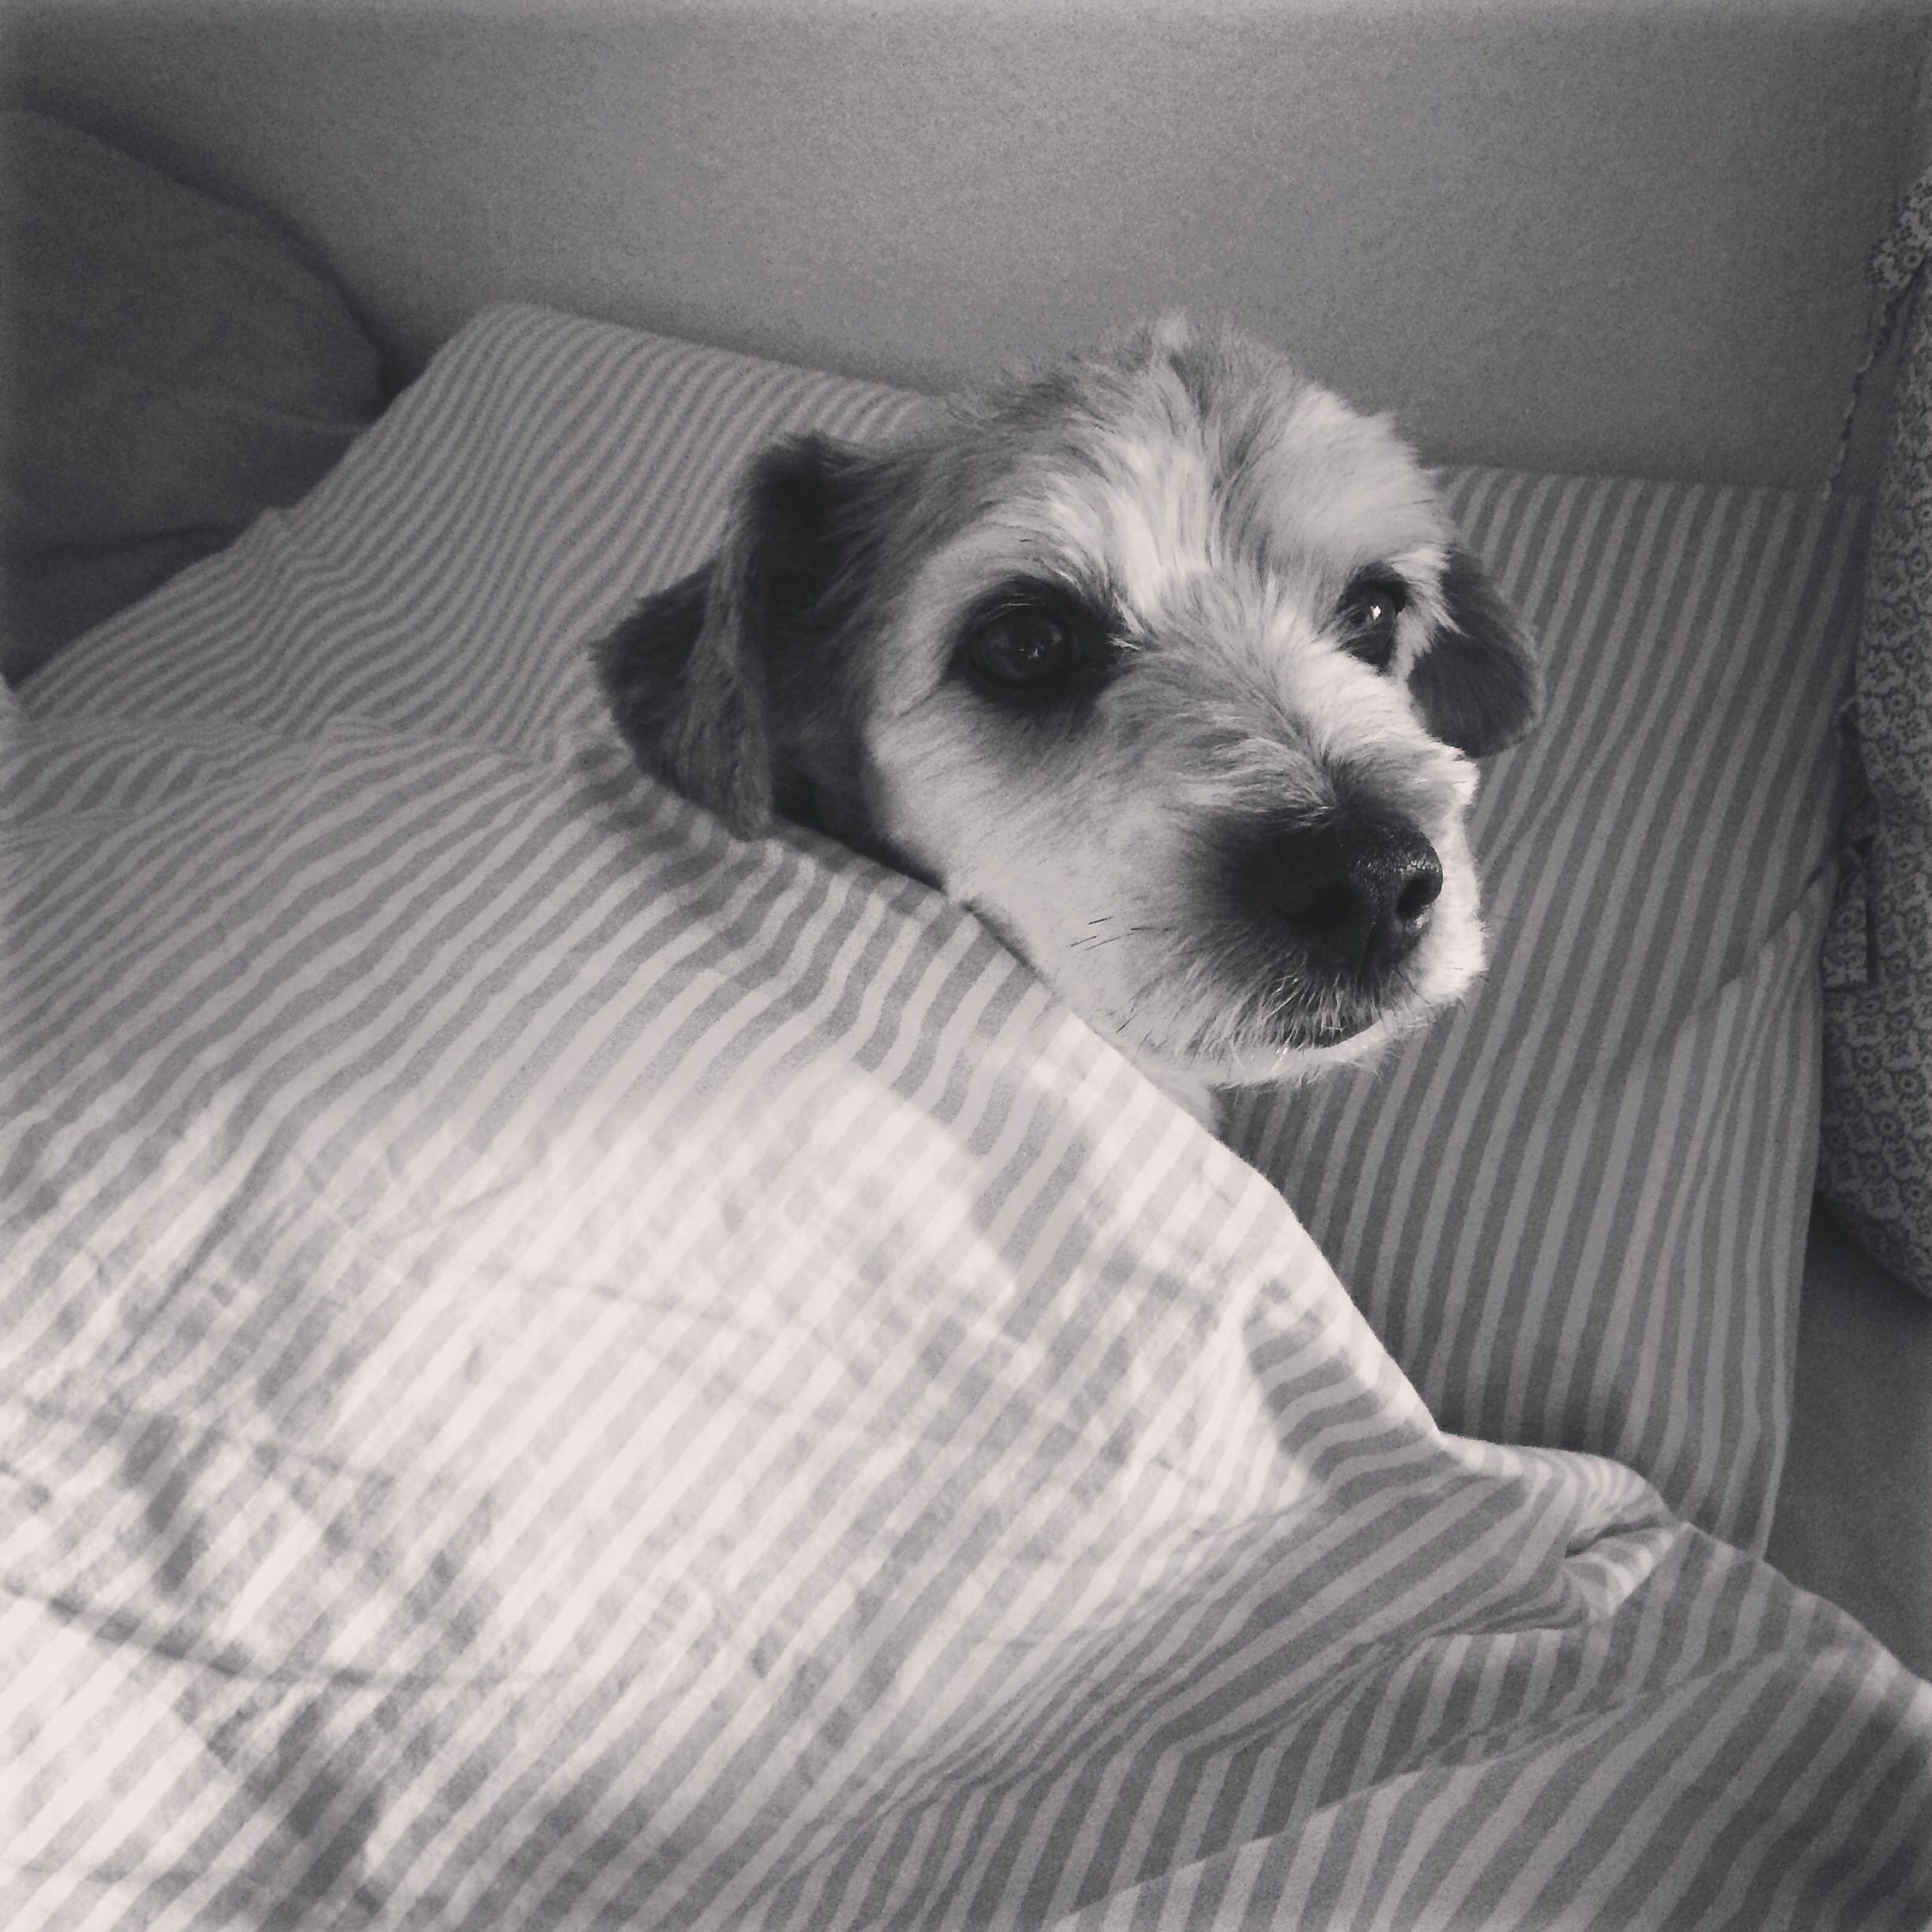 My little bed thief...